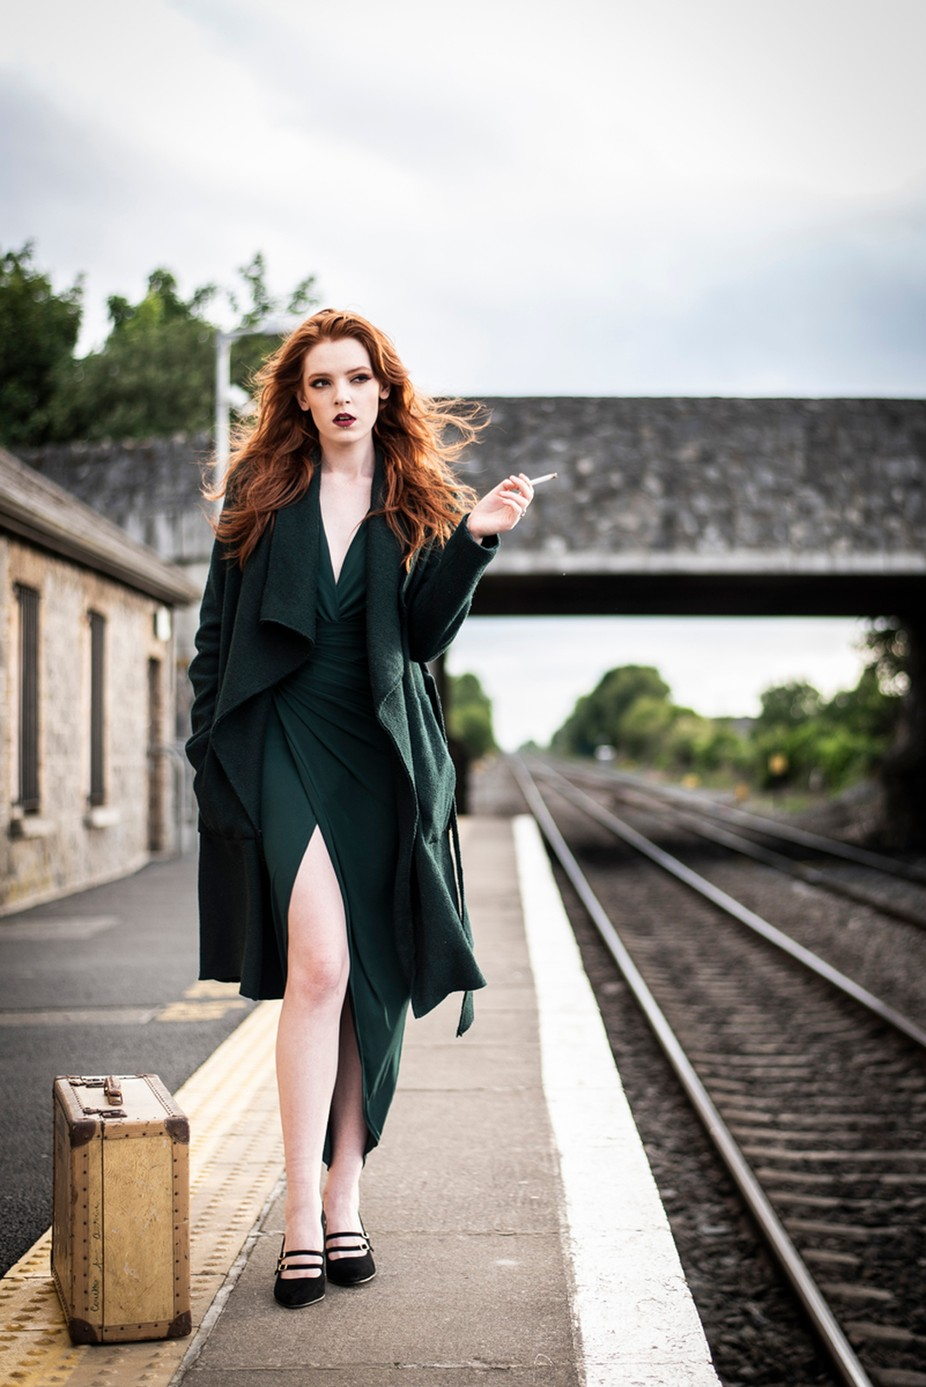 Waiting at the Station by PaulMaxwell23 - Image Of The Month Photo Contest Vol 35